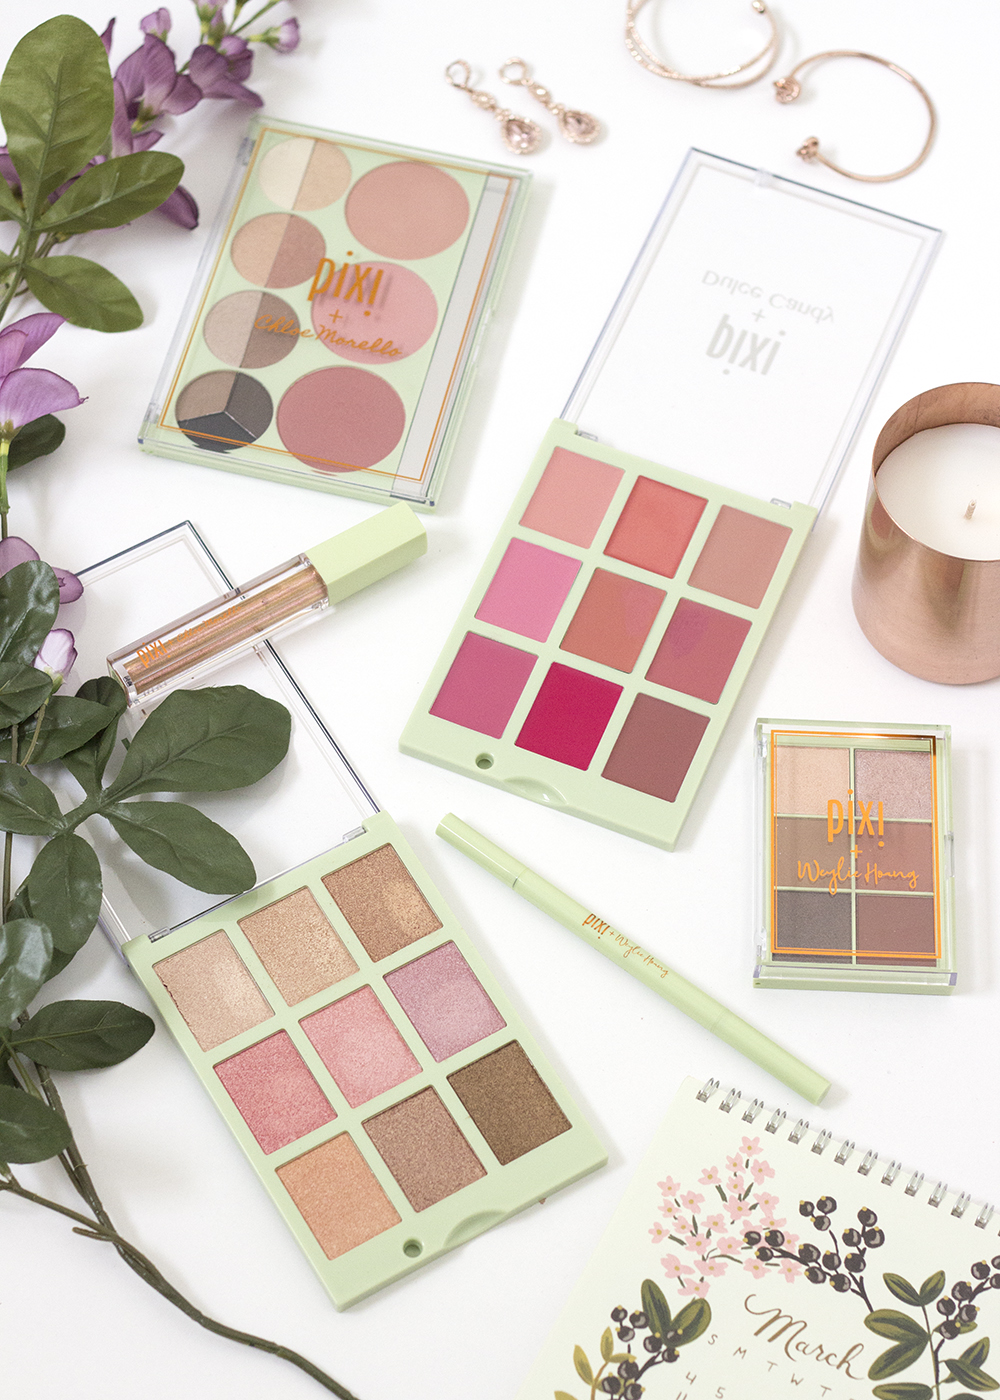 2018 Pixi Pretties Collaborations